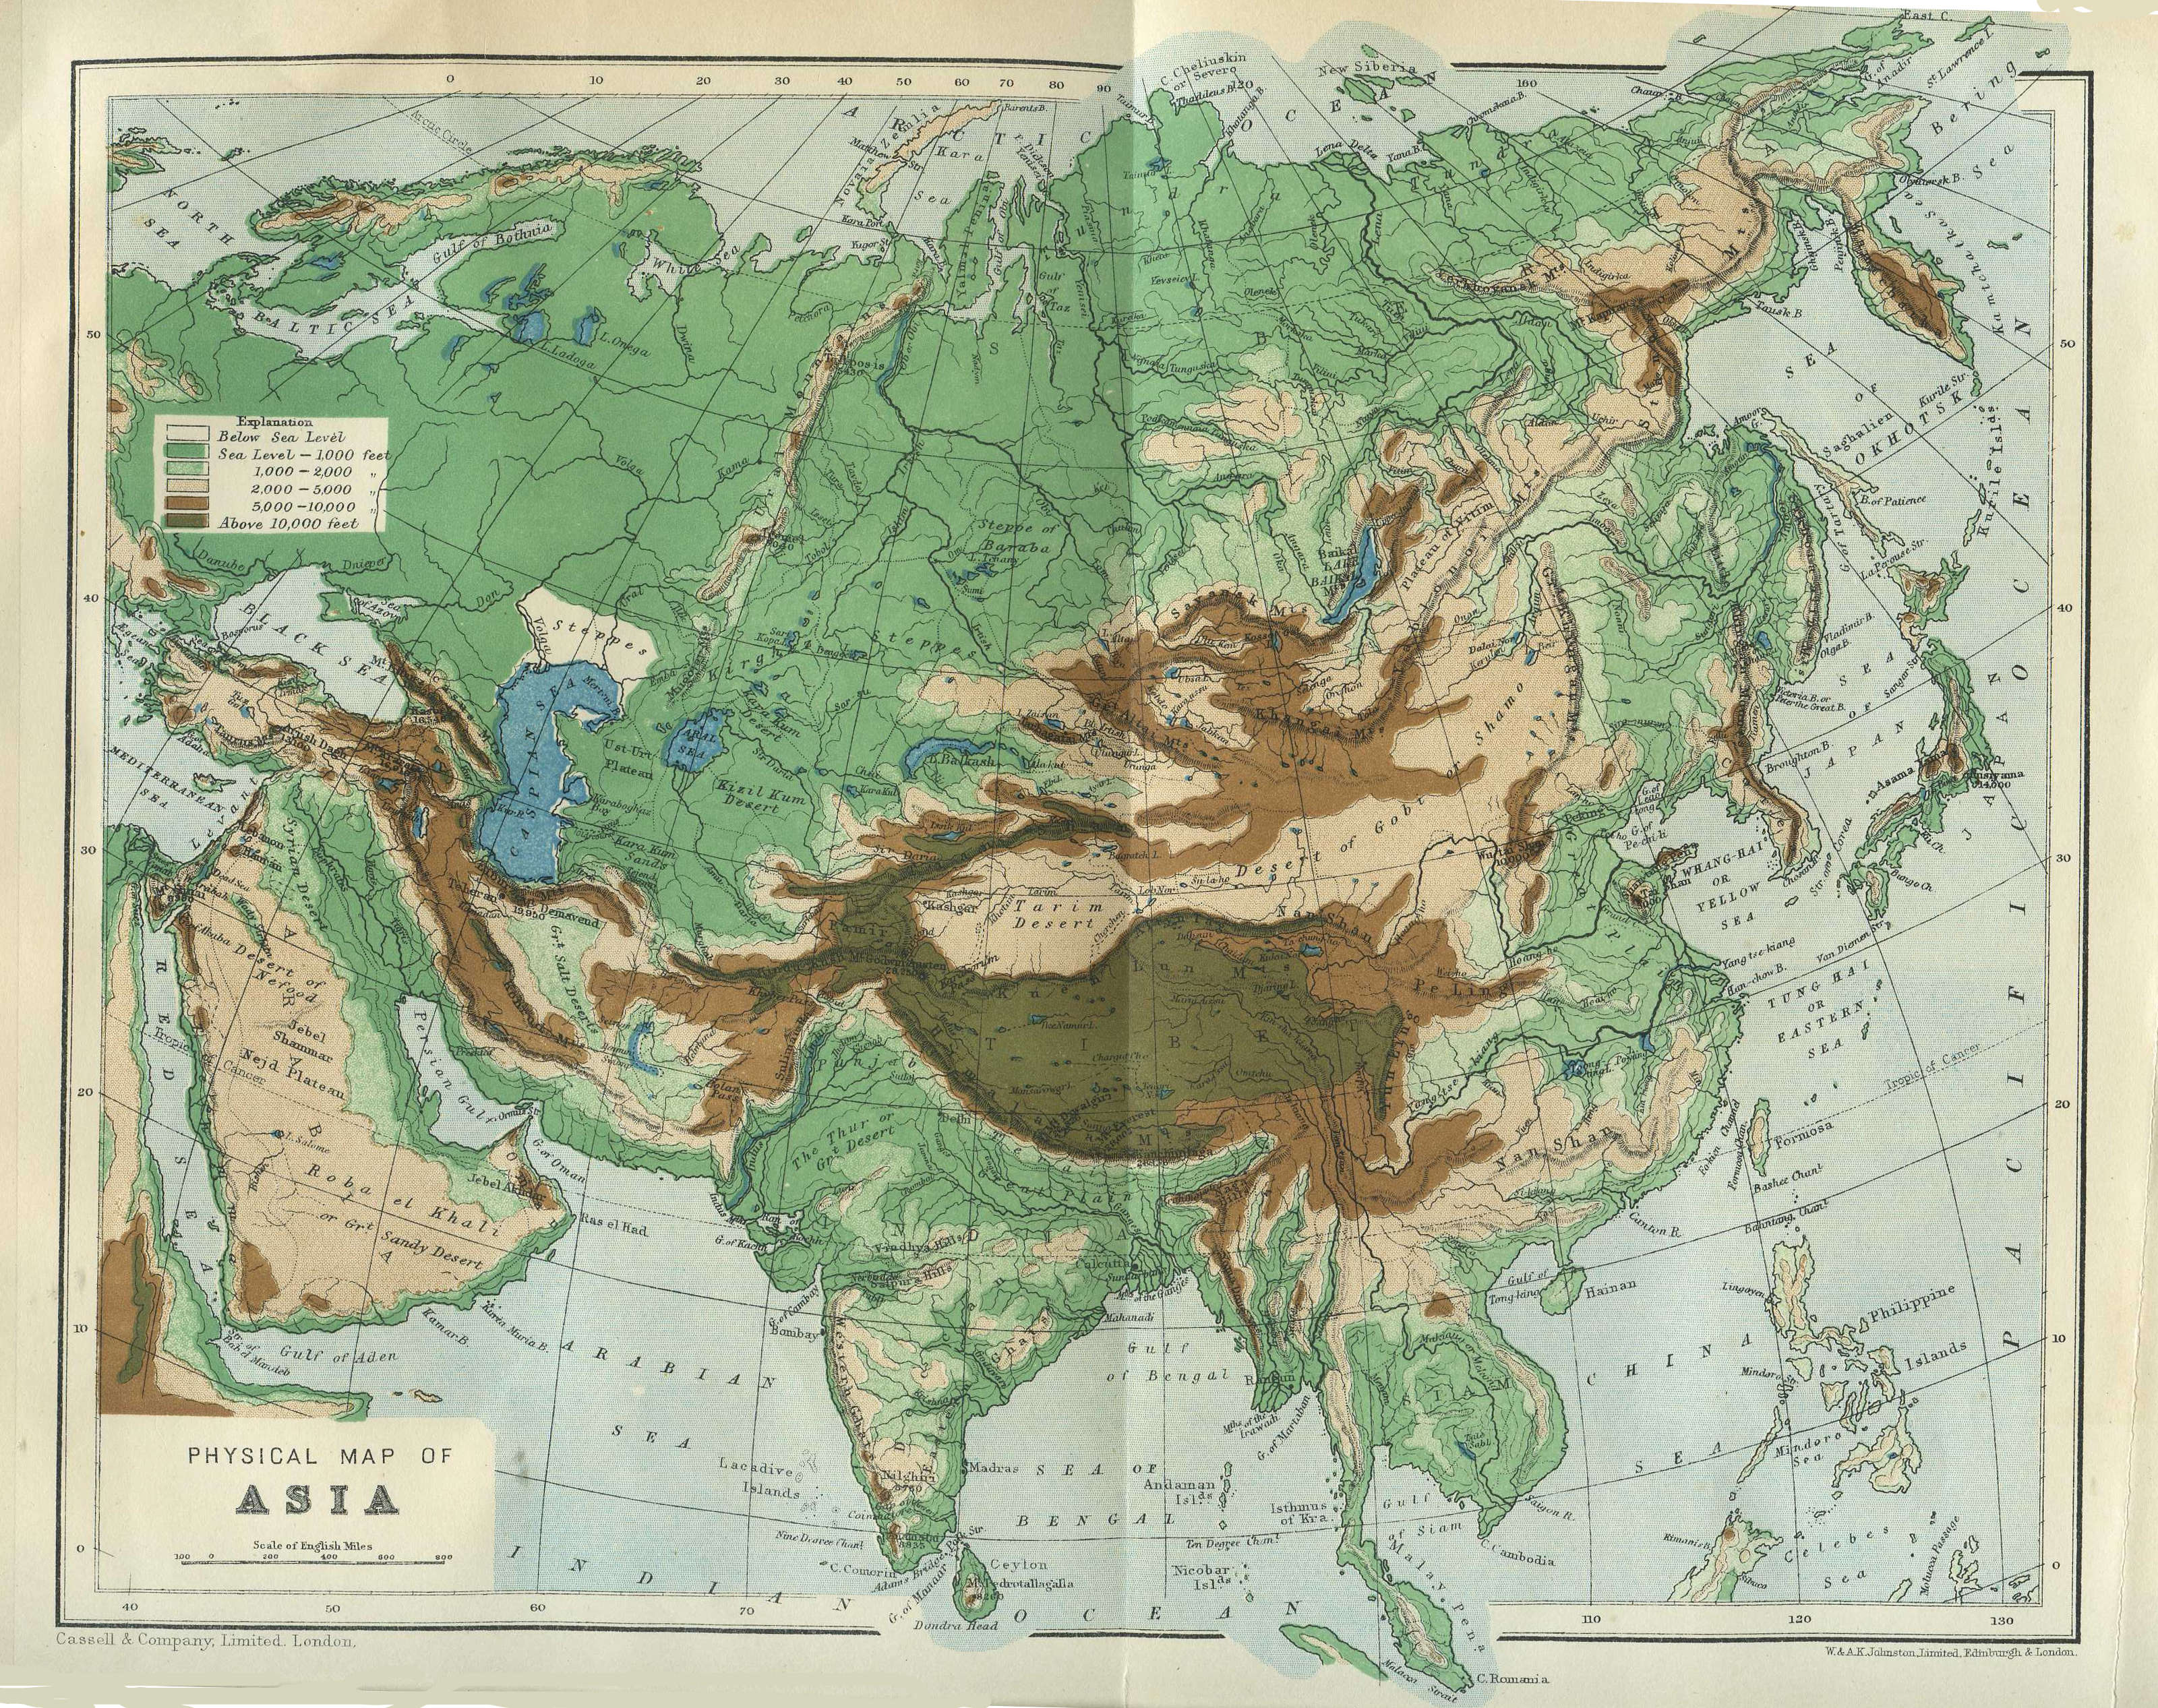 FileA Physical Map Of Asia From Cassels Encyclopedia Jpg - Physical map of asia